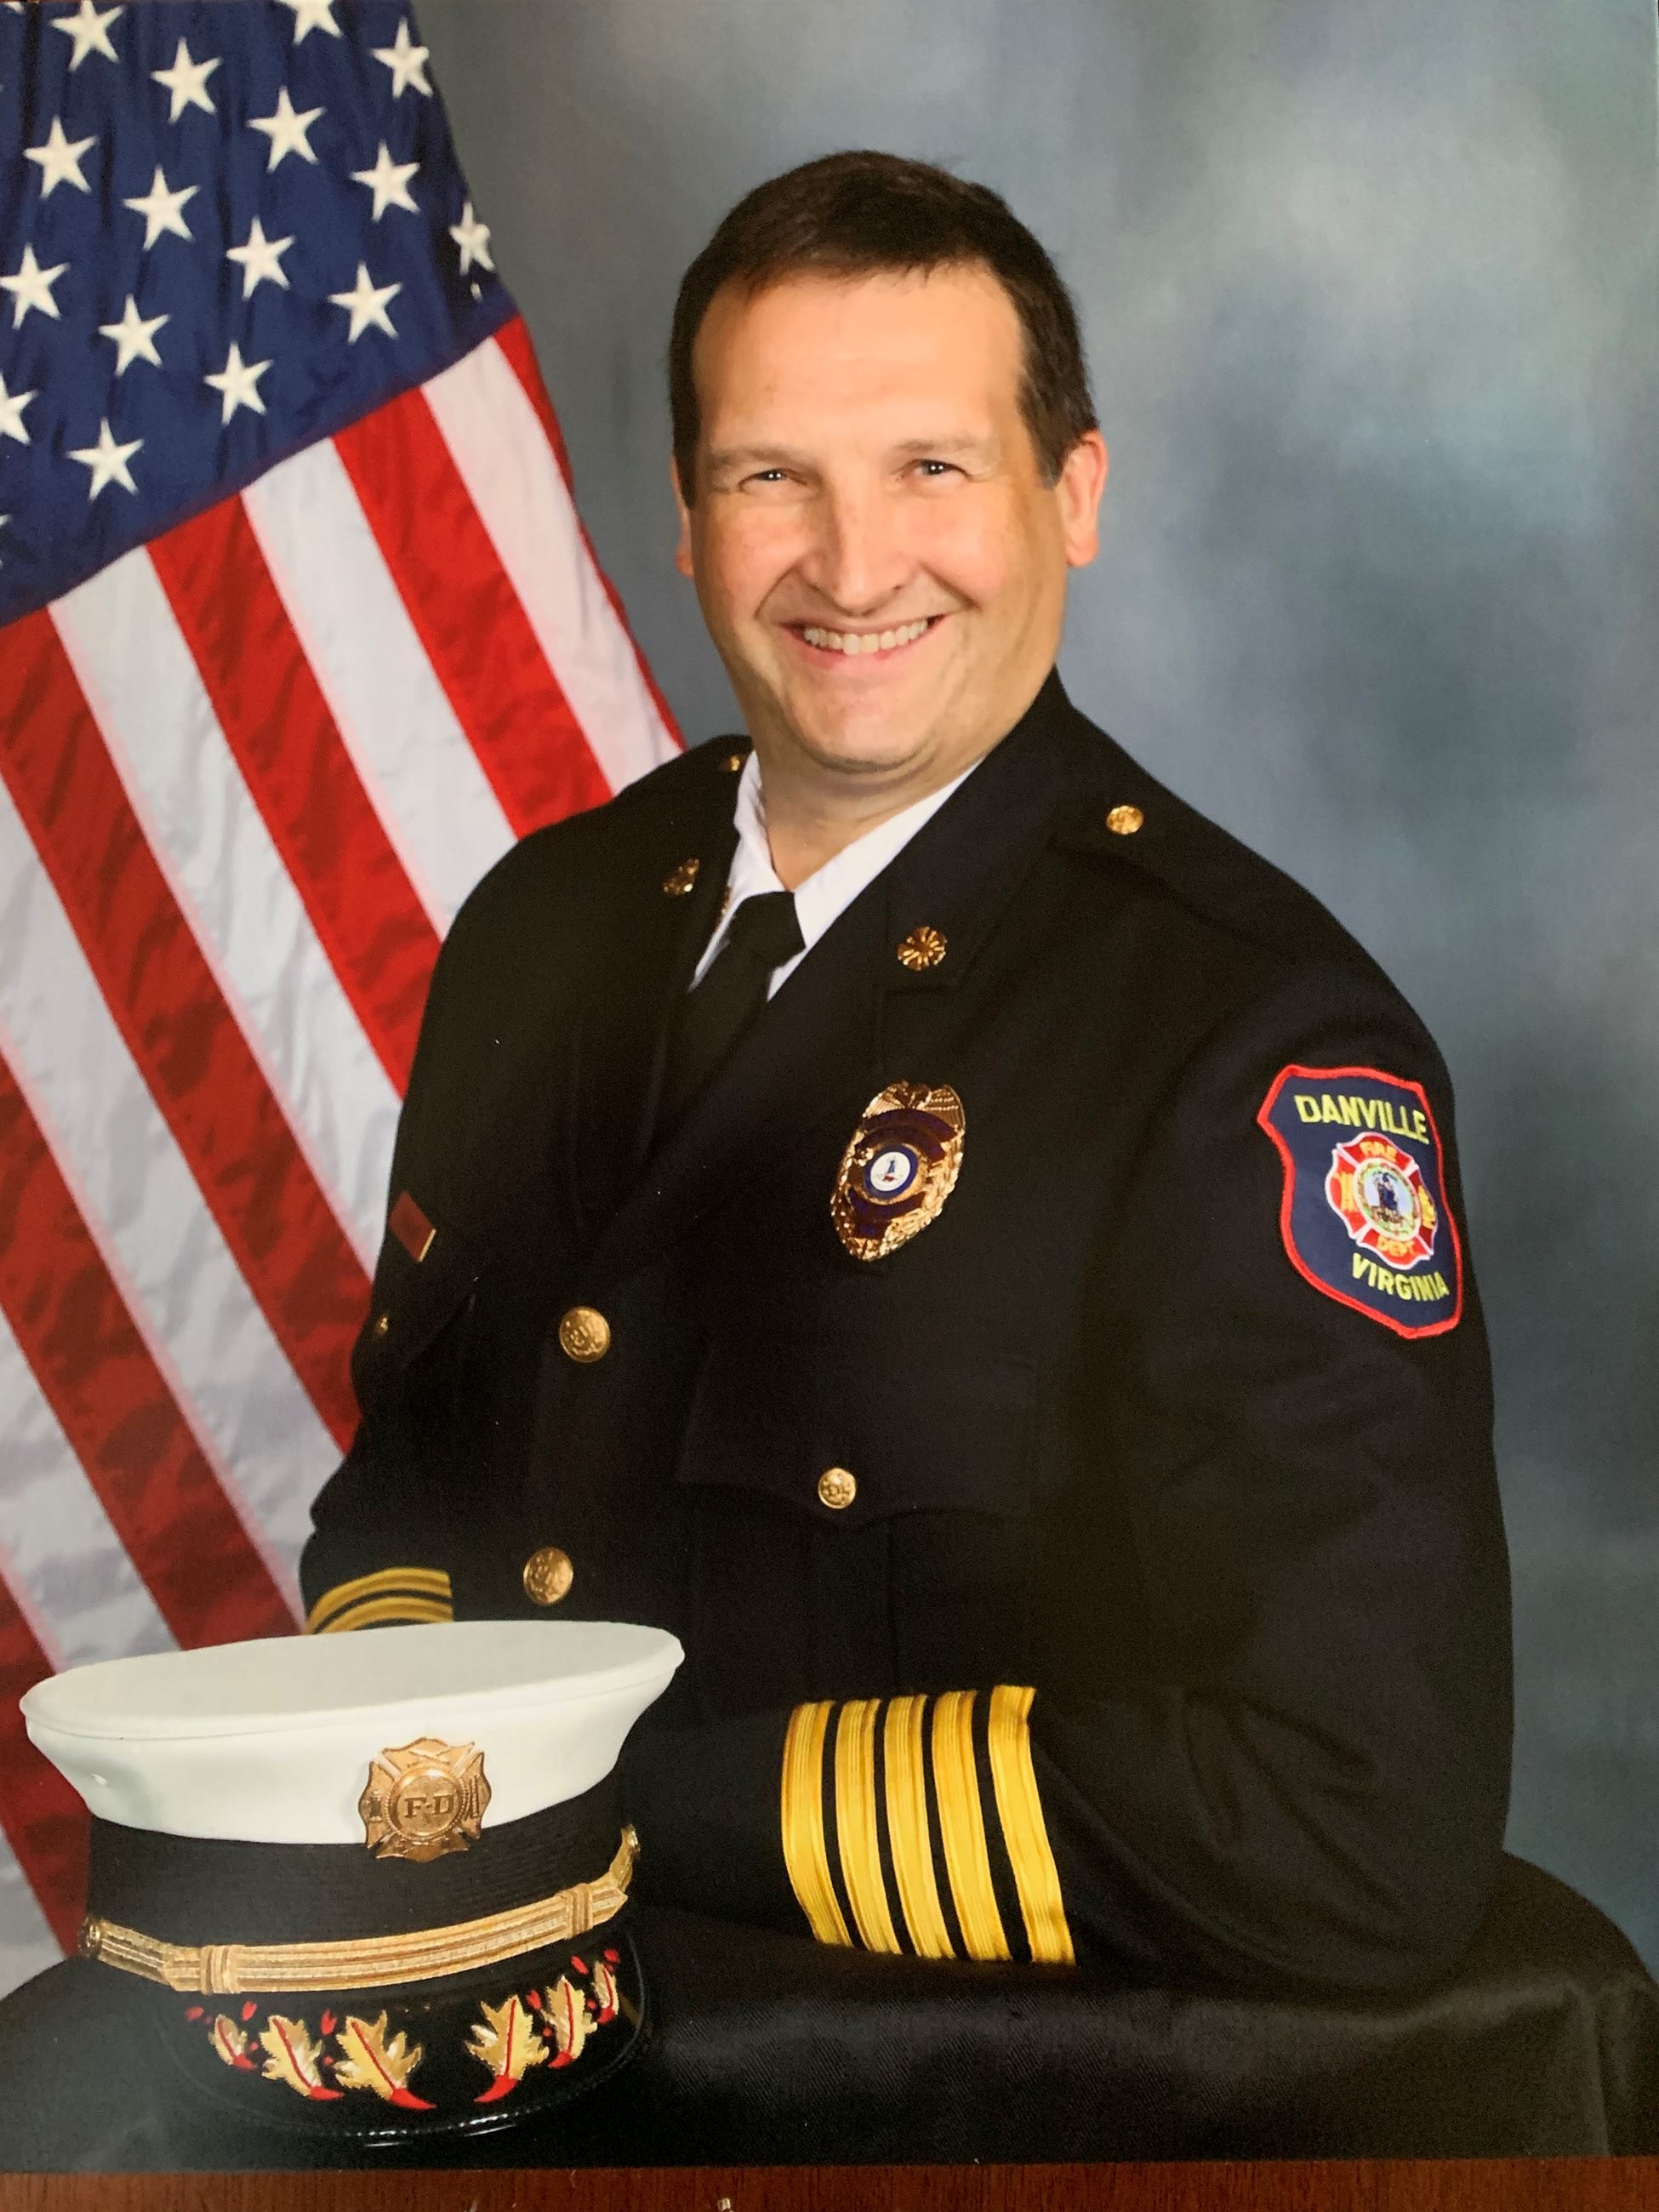 Fire Chief David Eagle